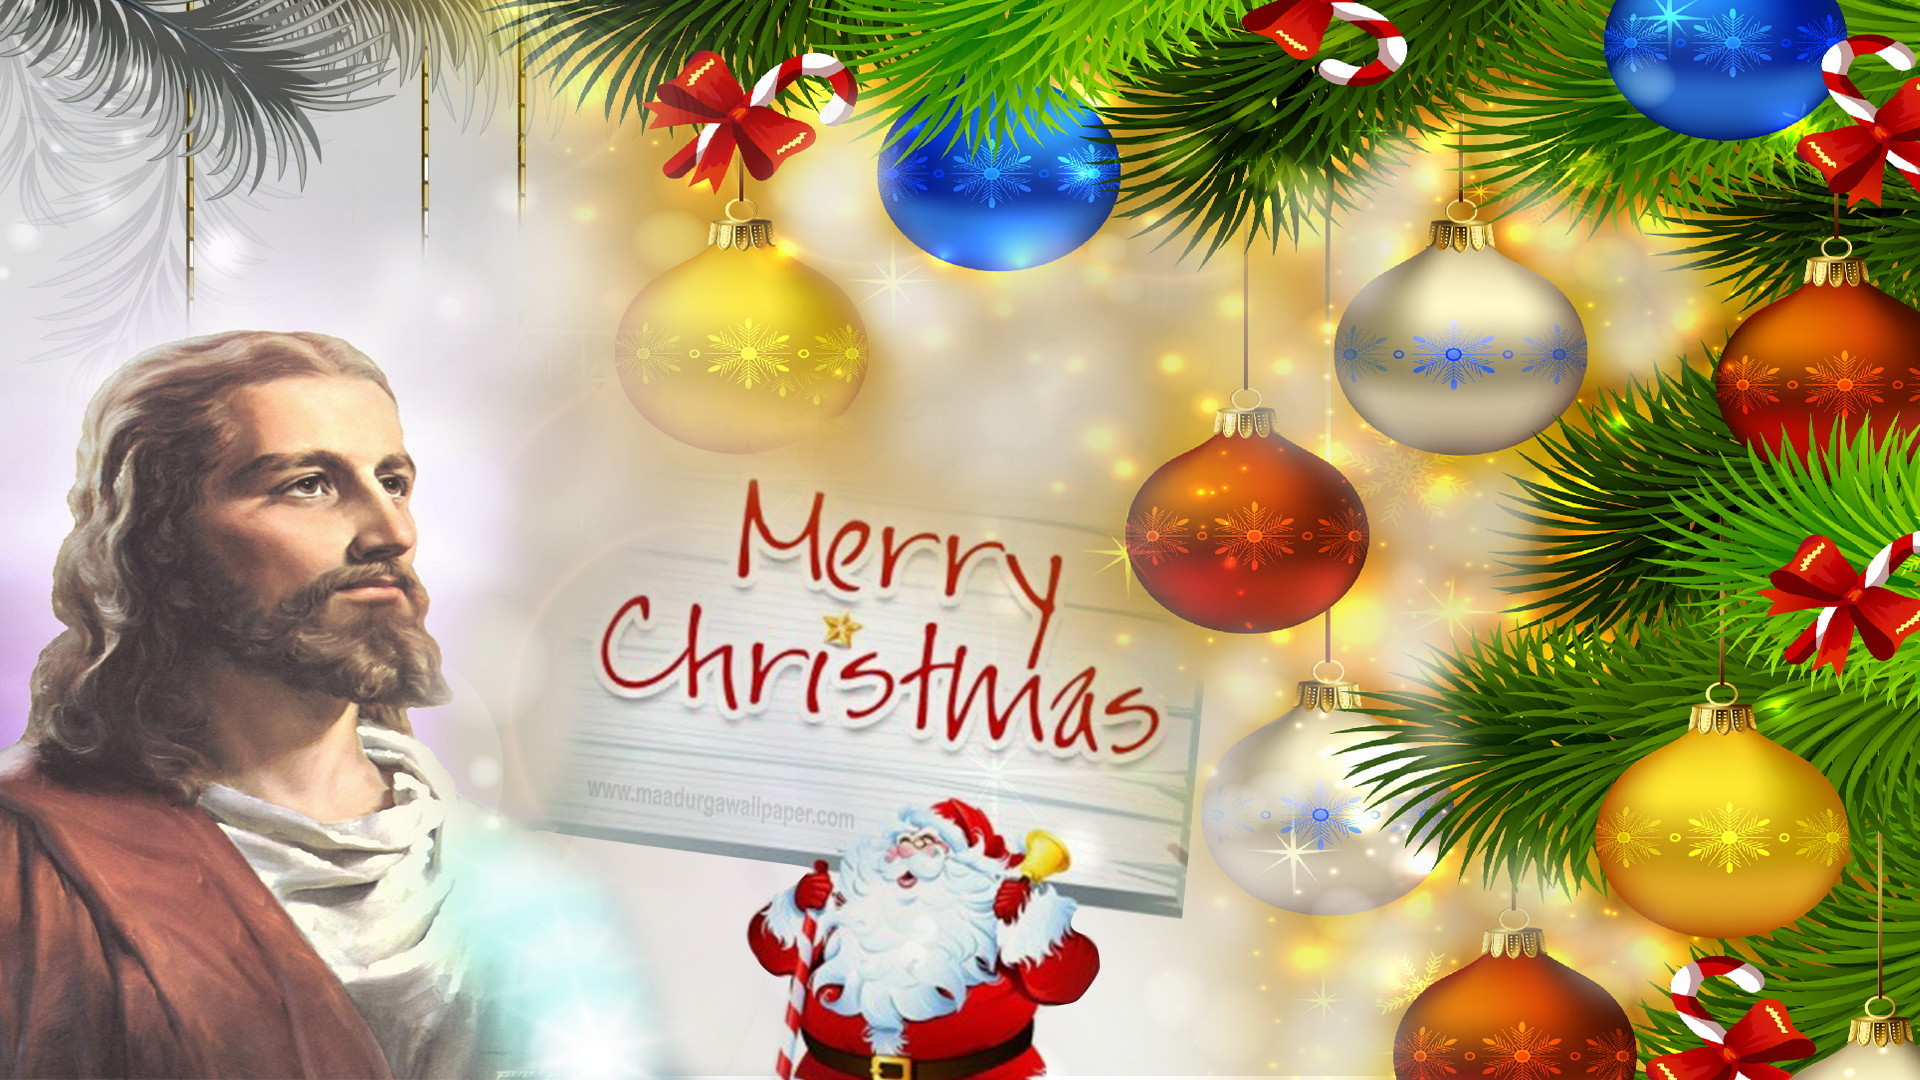 1920x1080 Jesus Christ Wallpaper, beautiful images & hd pictures download free for  tablet, desktop pc